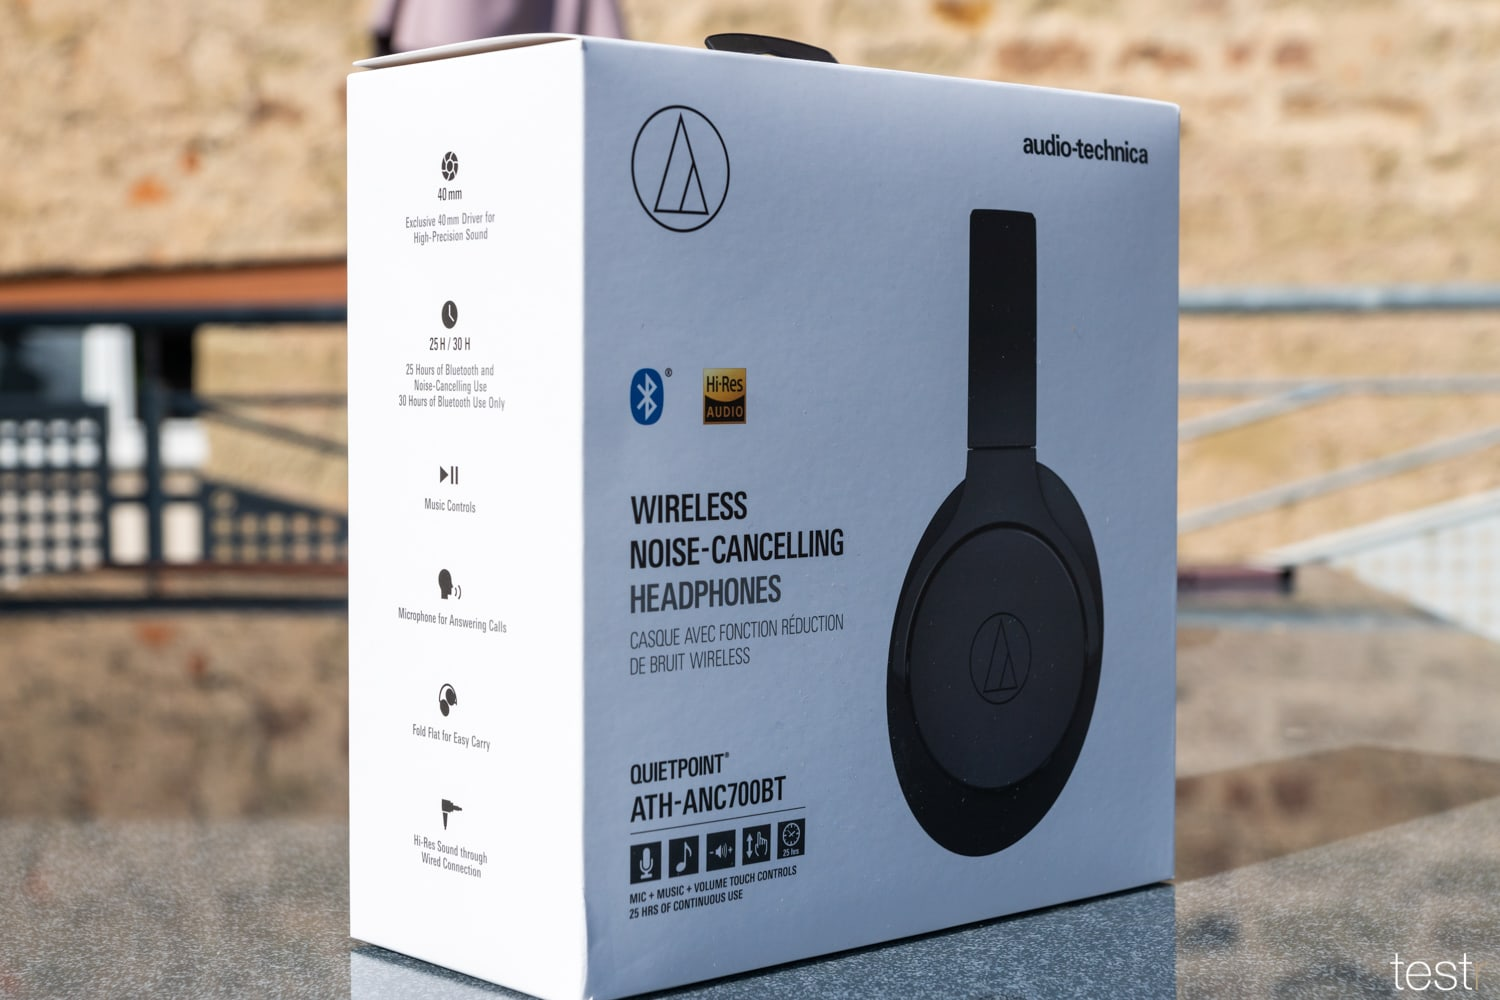 Audio Technica ATHANC700BT 1